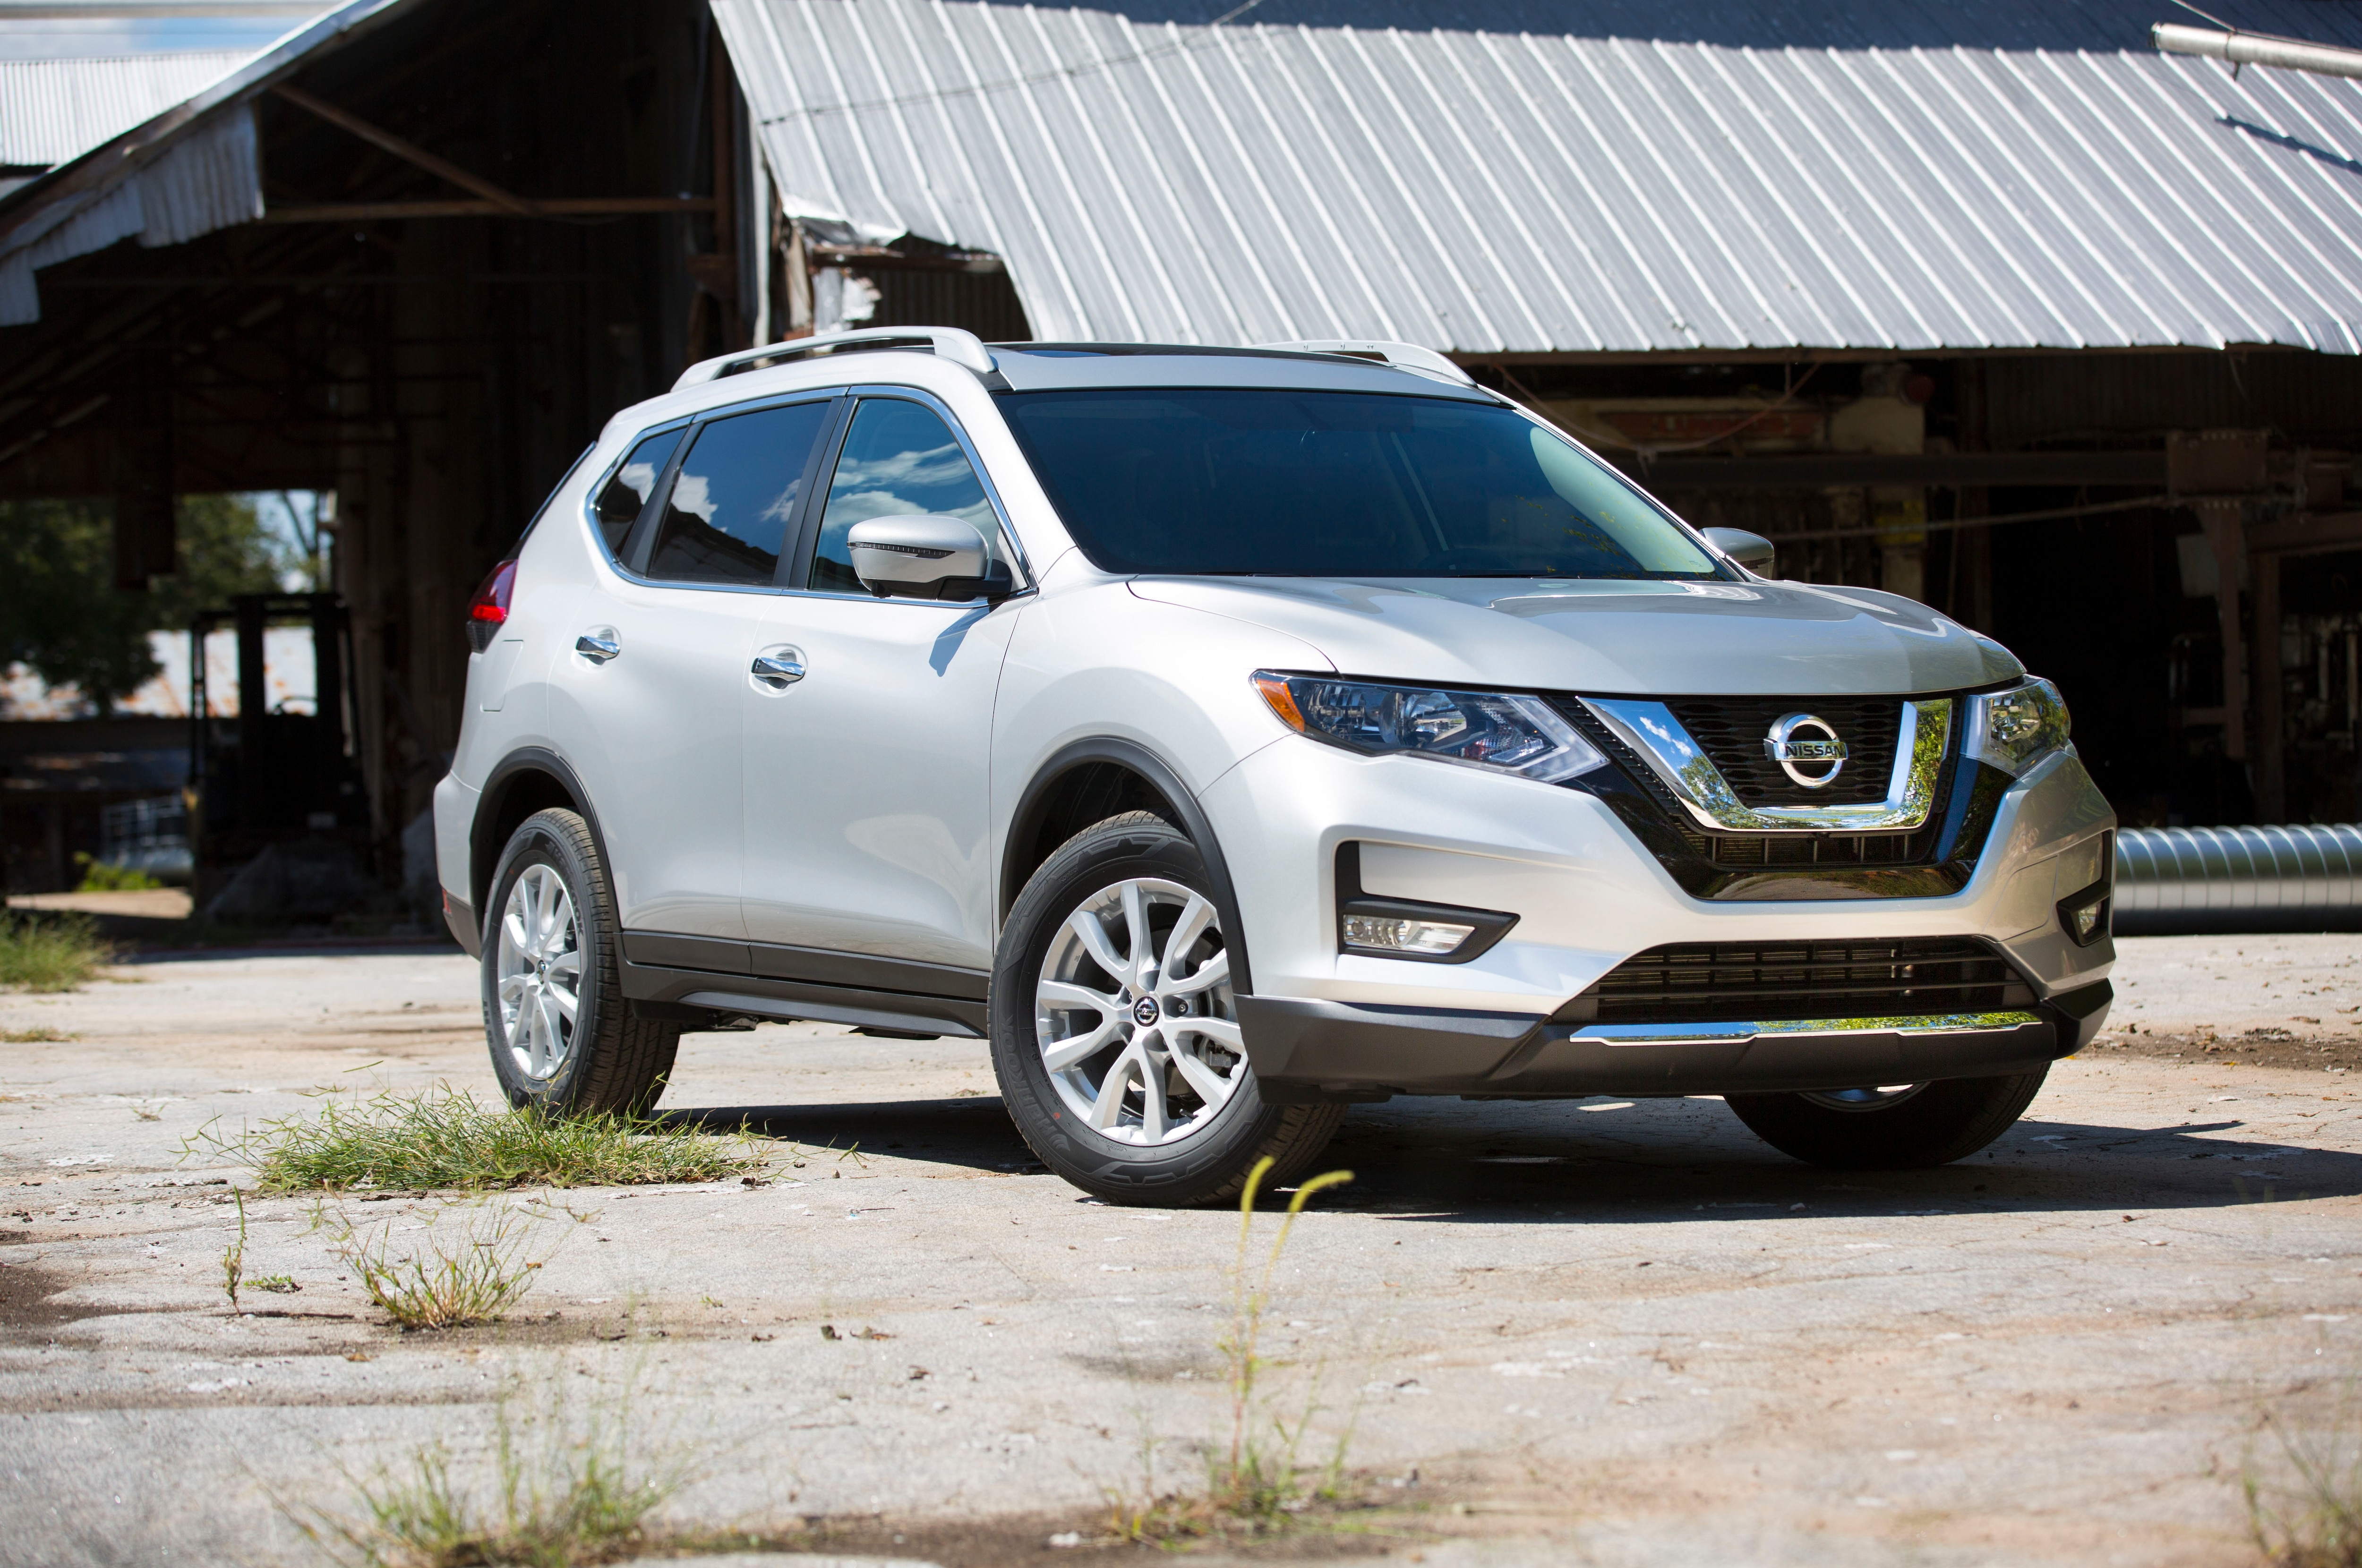 rogue nissan brand lineup select news brands continues s auto